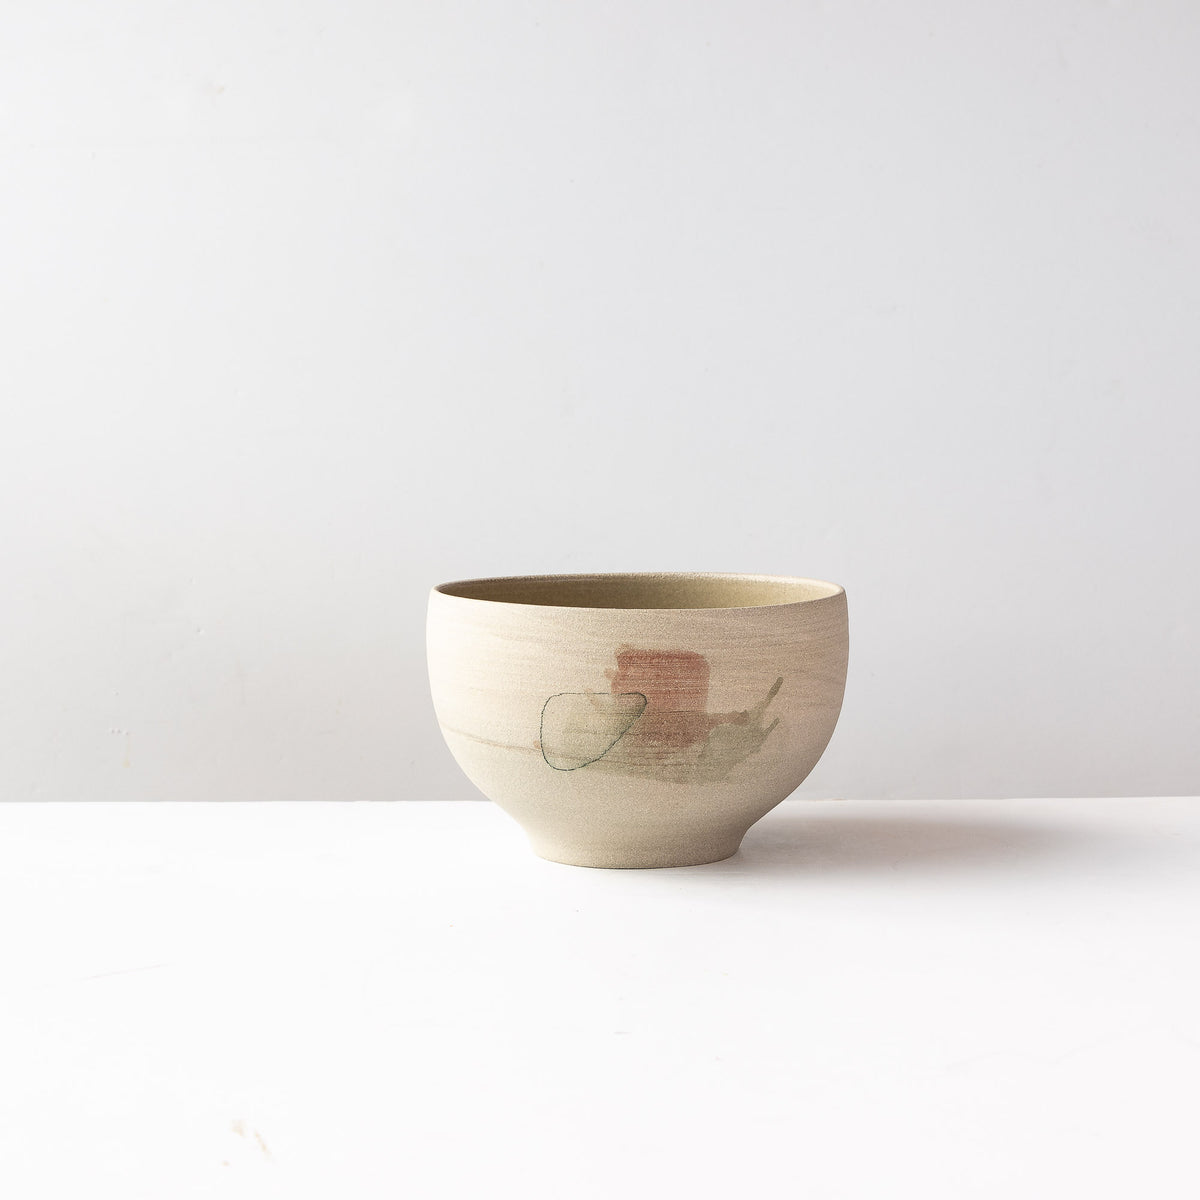 Large Handmade Stoneware Bowl - Sold by Chic & Basta